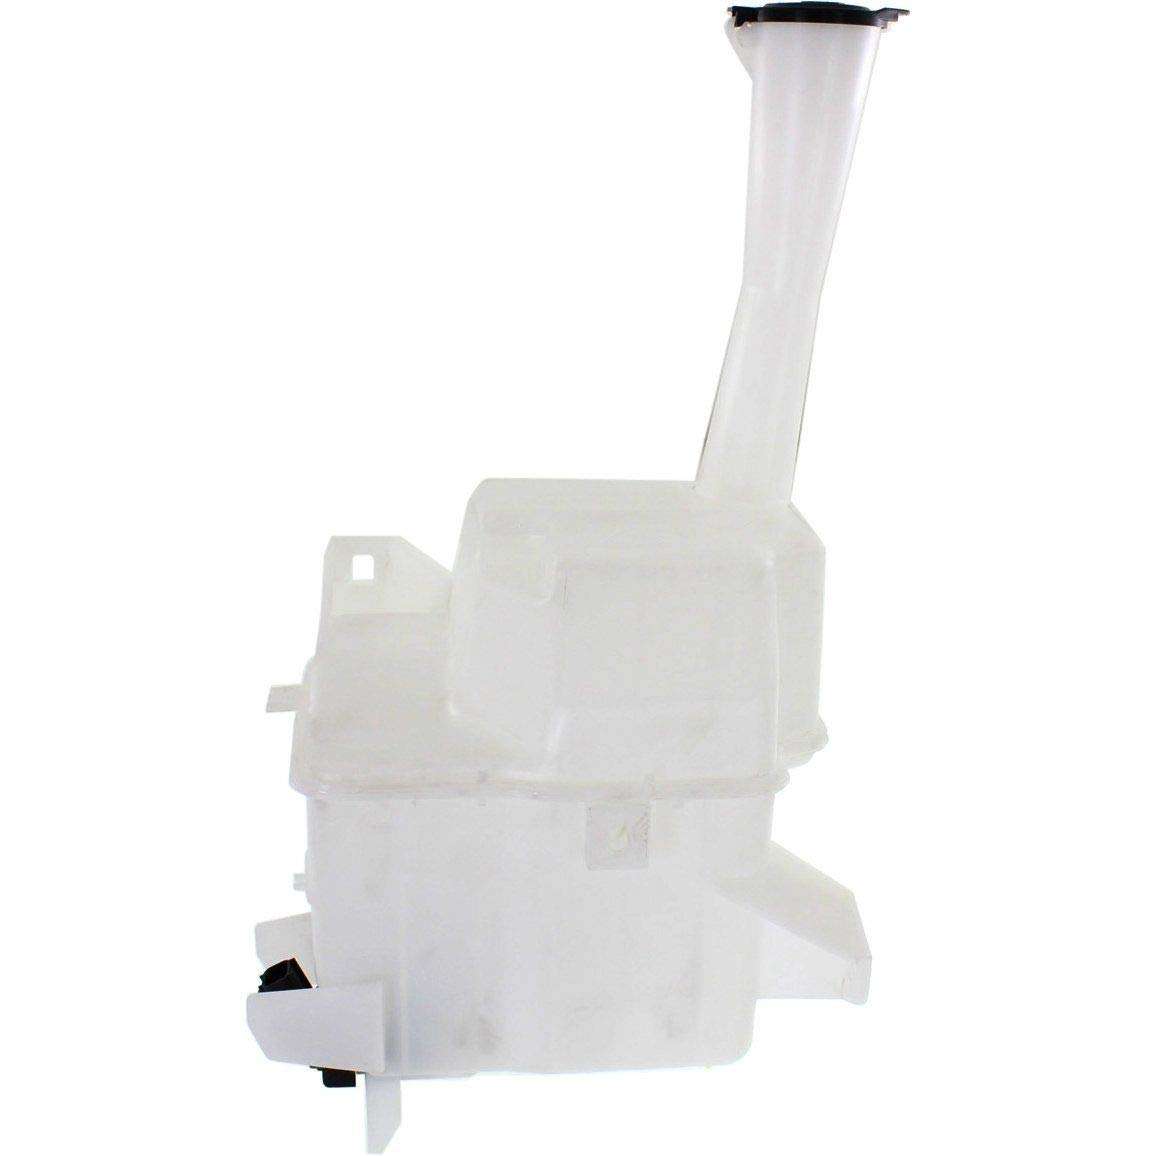 New Windshield Washer Tank For 2004-2015 Toyota Sienna With Two Pumps And Sensor TO1288175 by Fitrite Autoparts